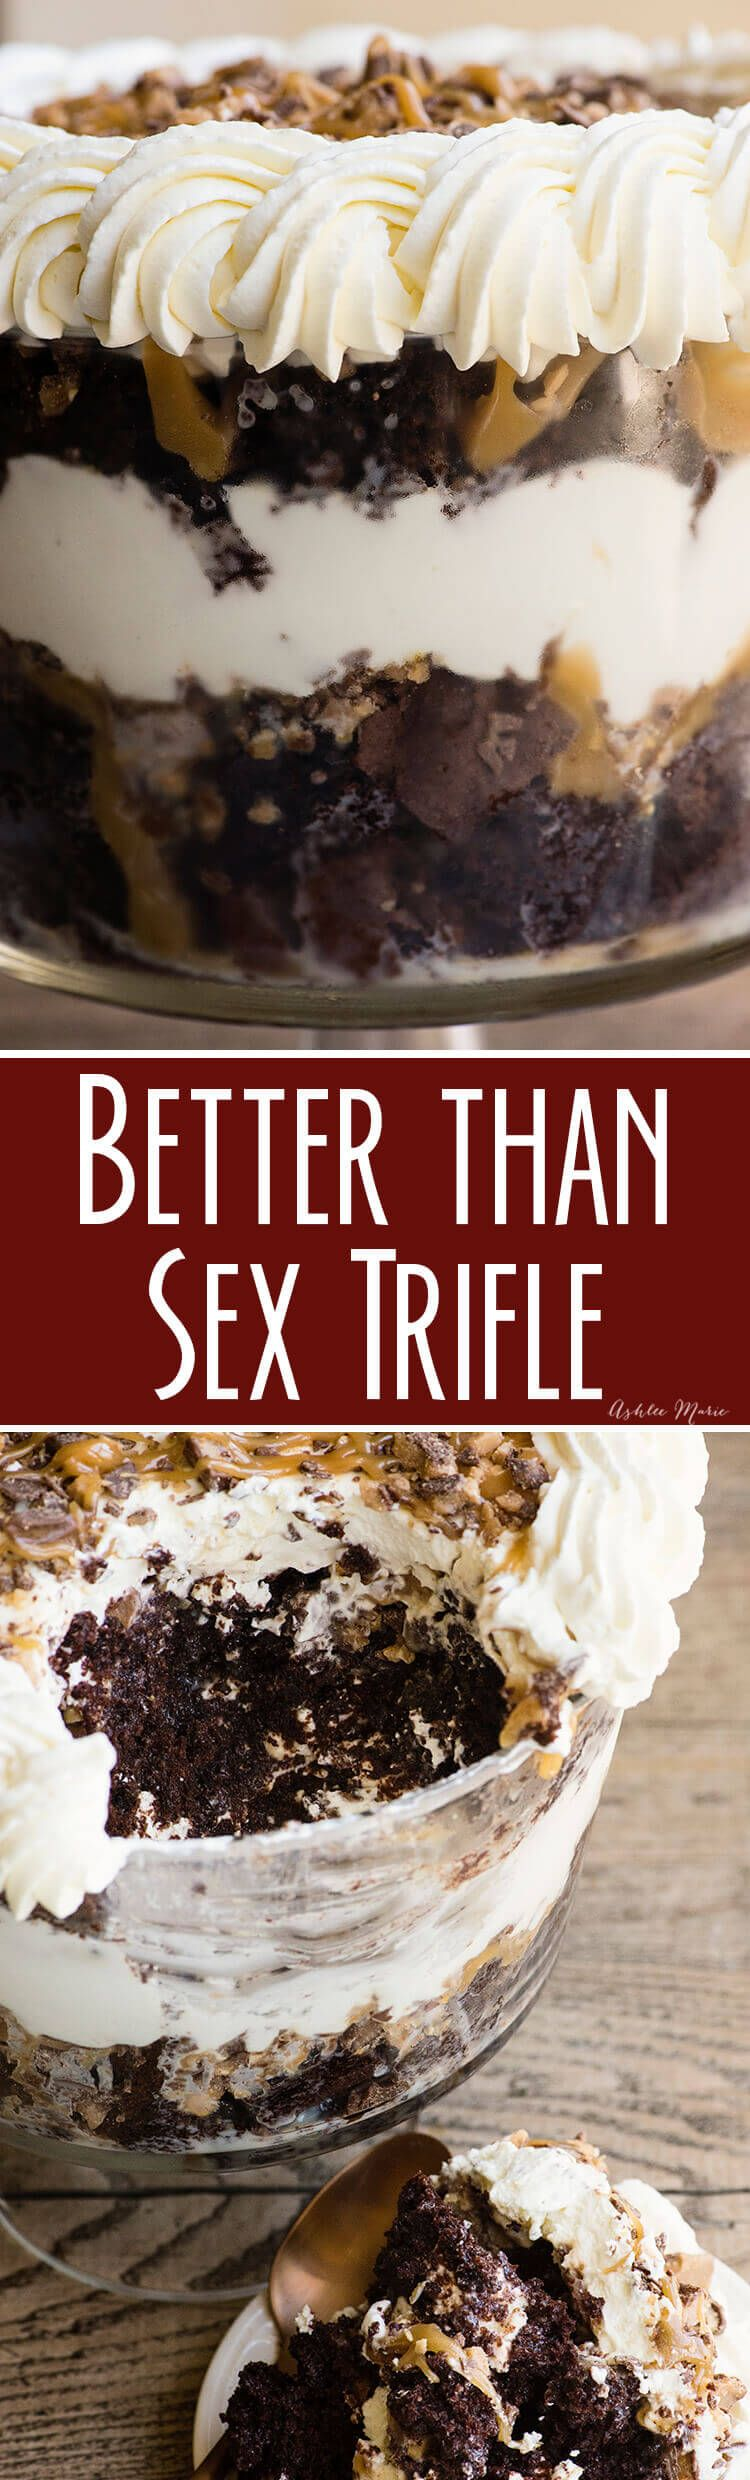 better than sex trifle